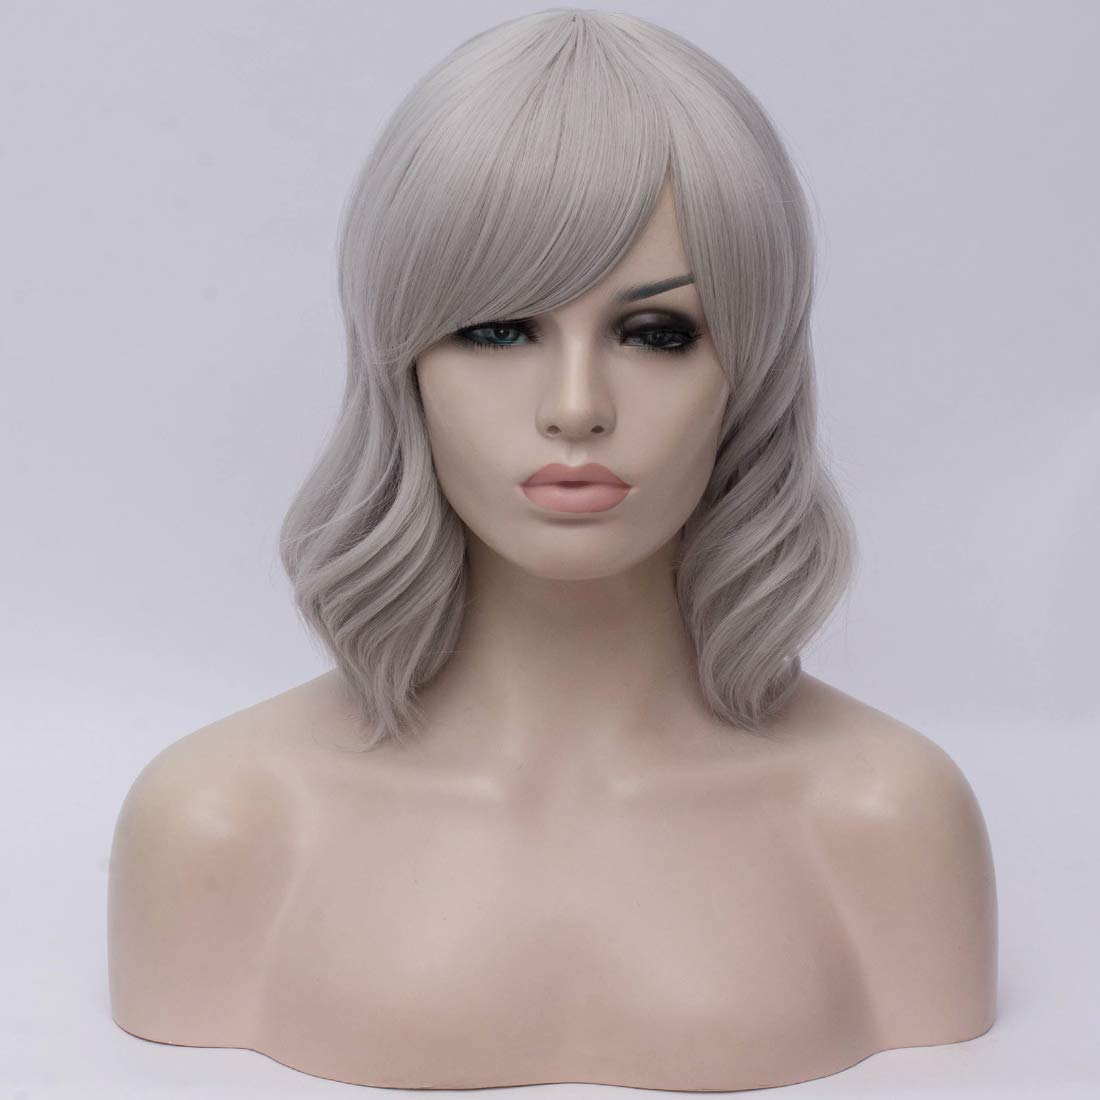 BUFASHION Short Wavy Bob Wigs Silver Curly Hair Wigs With Bangs Heat Resistant Cosplay Party Custom Wigs With Wig Cap (Silver)